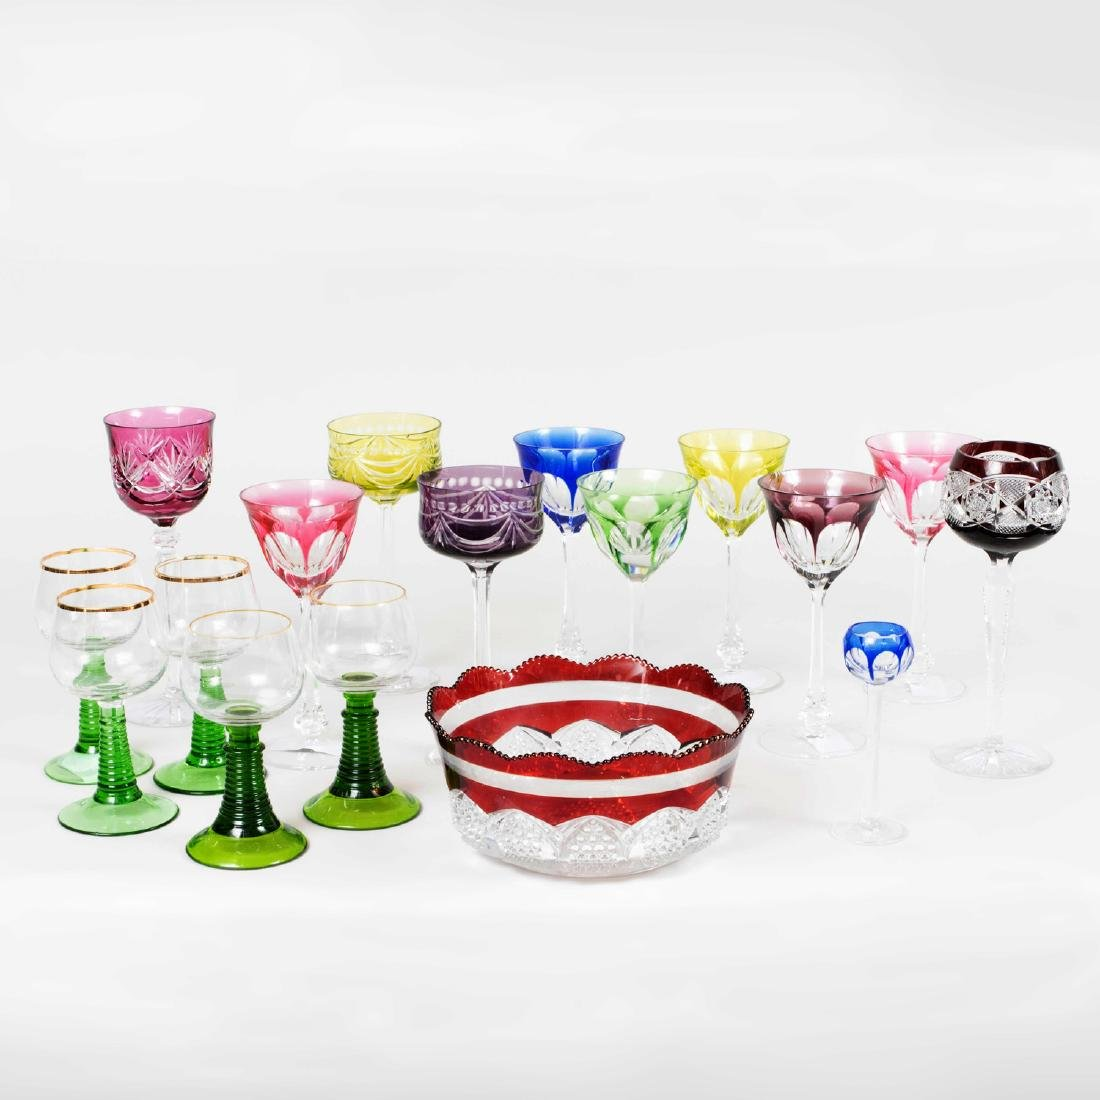 Group of Colored Cut Glass Stemware and Table Articles